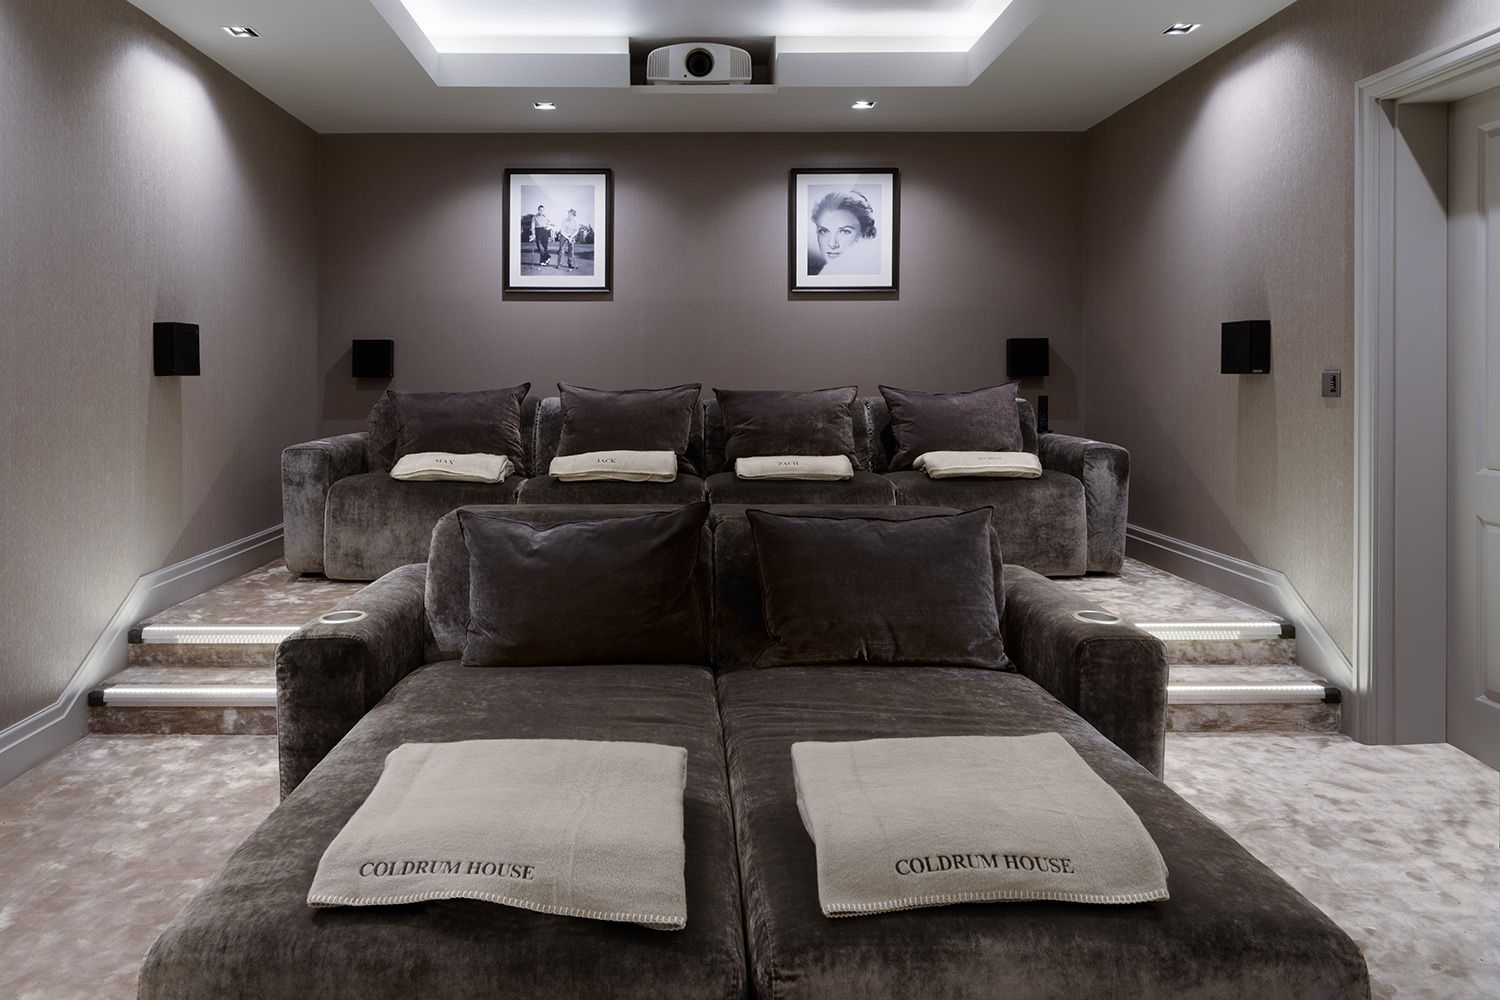 Home Cinema Sofa Seating Uk New Trend Leather Sofas Luxury Theatre With Some Rather Special